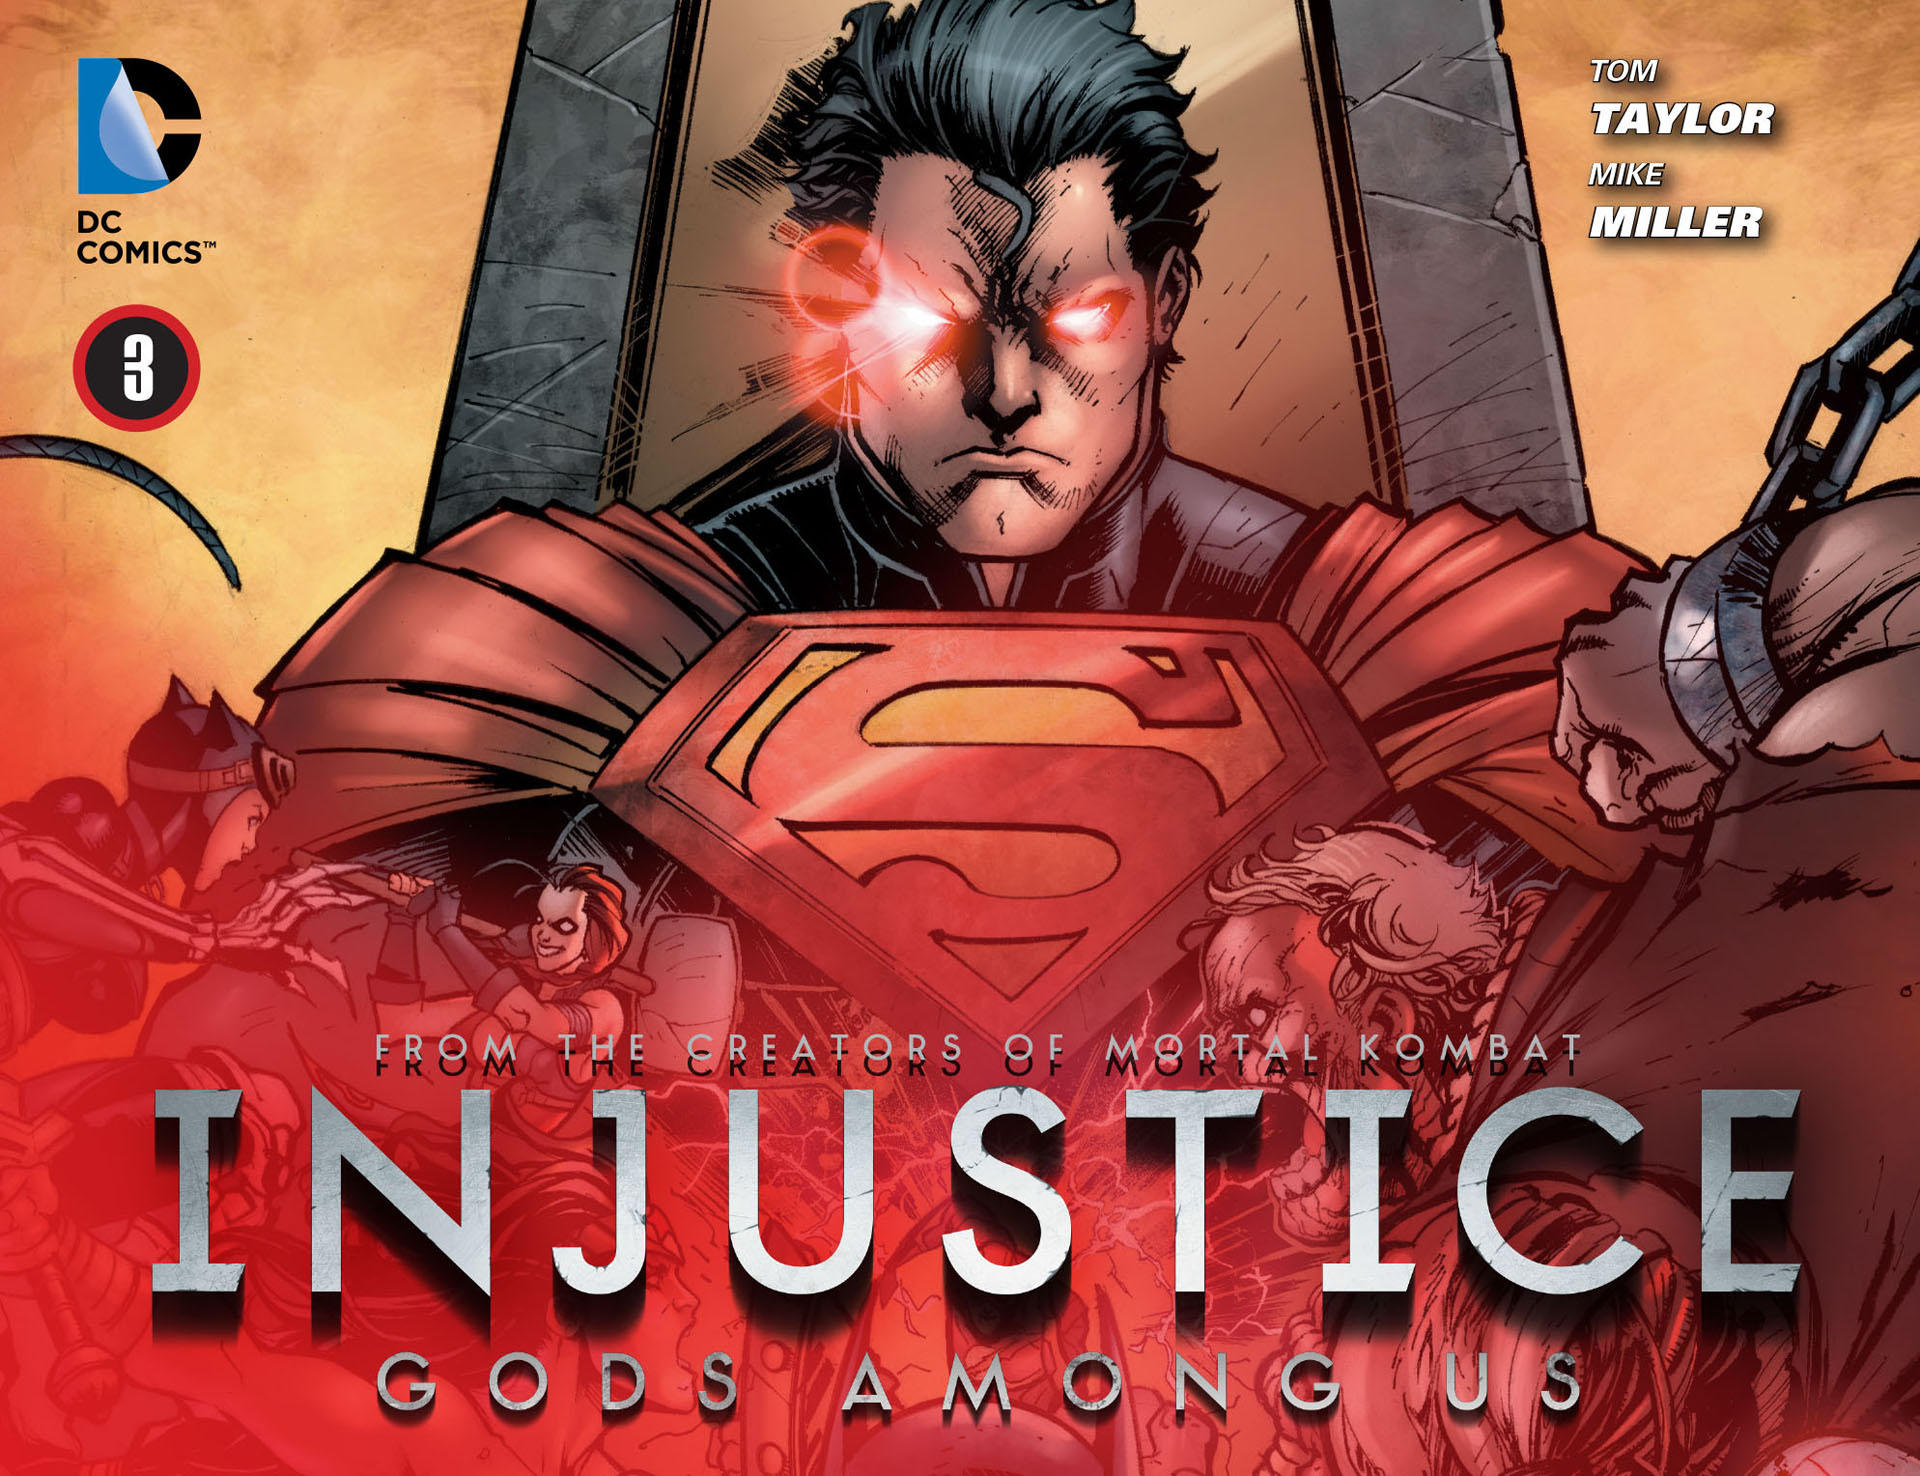 Injustice: Gods Among Us [I] 3 Page 1